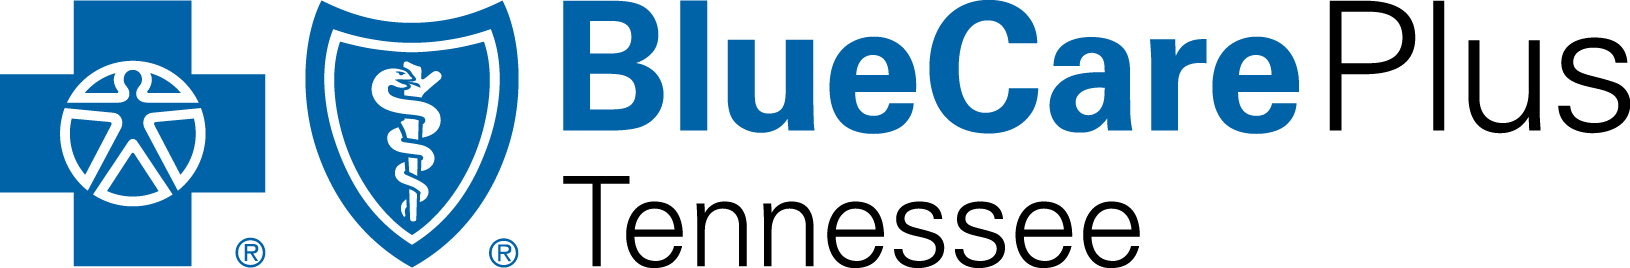 bluecare plus Types of Coverage | BlueCare Tennessee